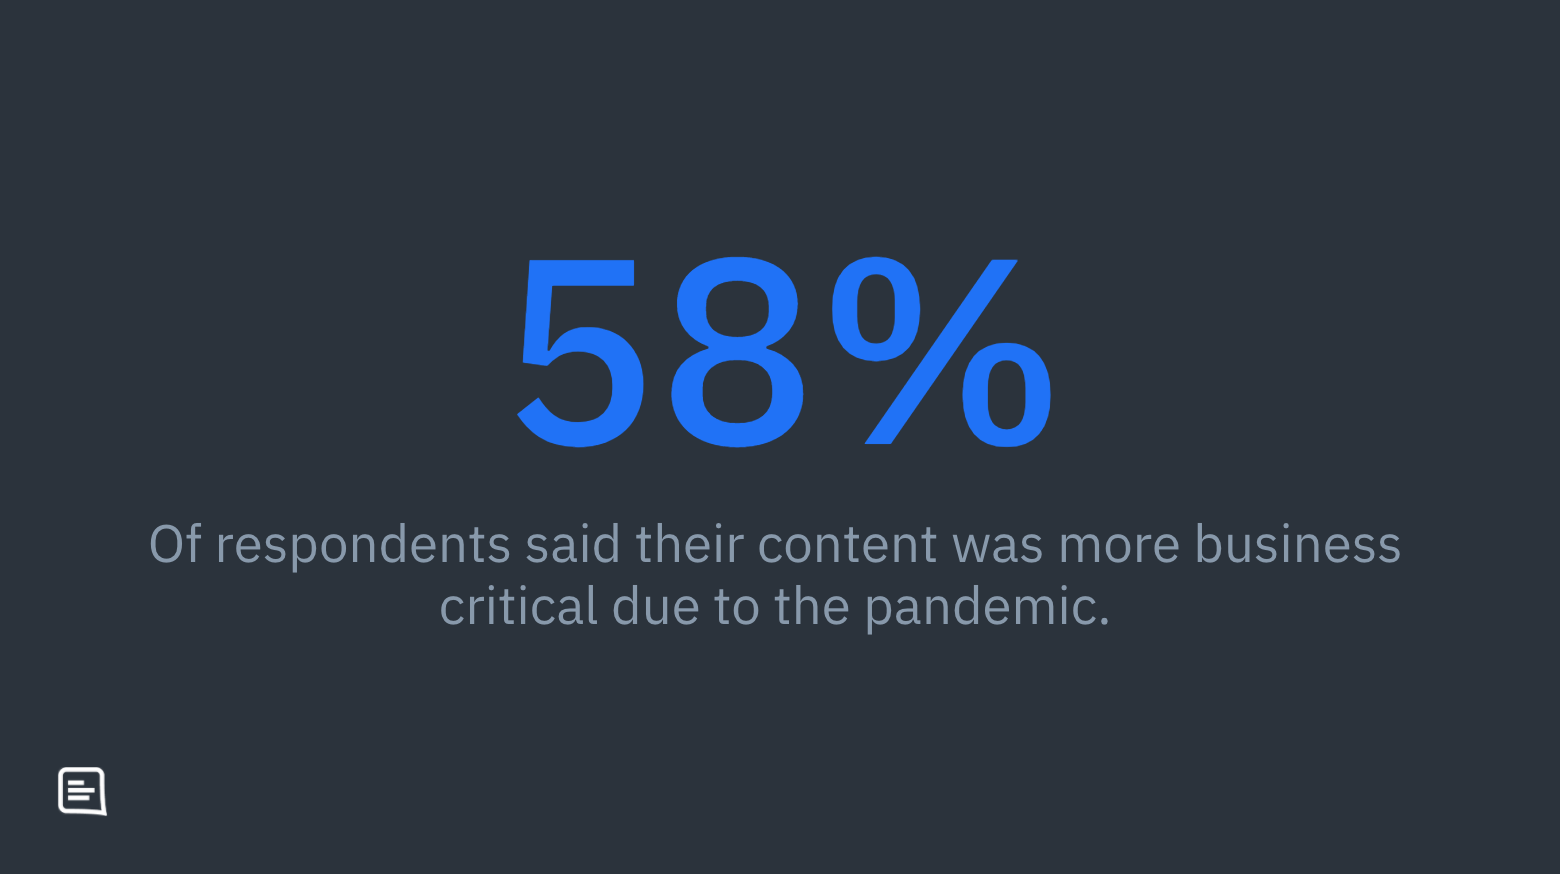 A slide showing the stat of 58% with the text explaining this is the percentage of survey respondents that said their university content was more business critical due to the pandemic.